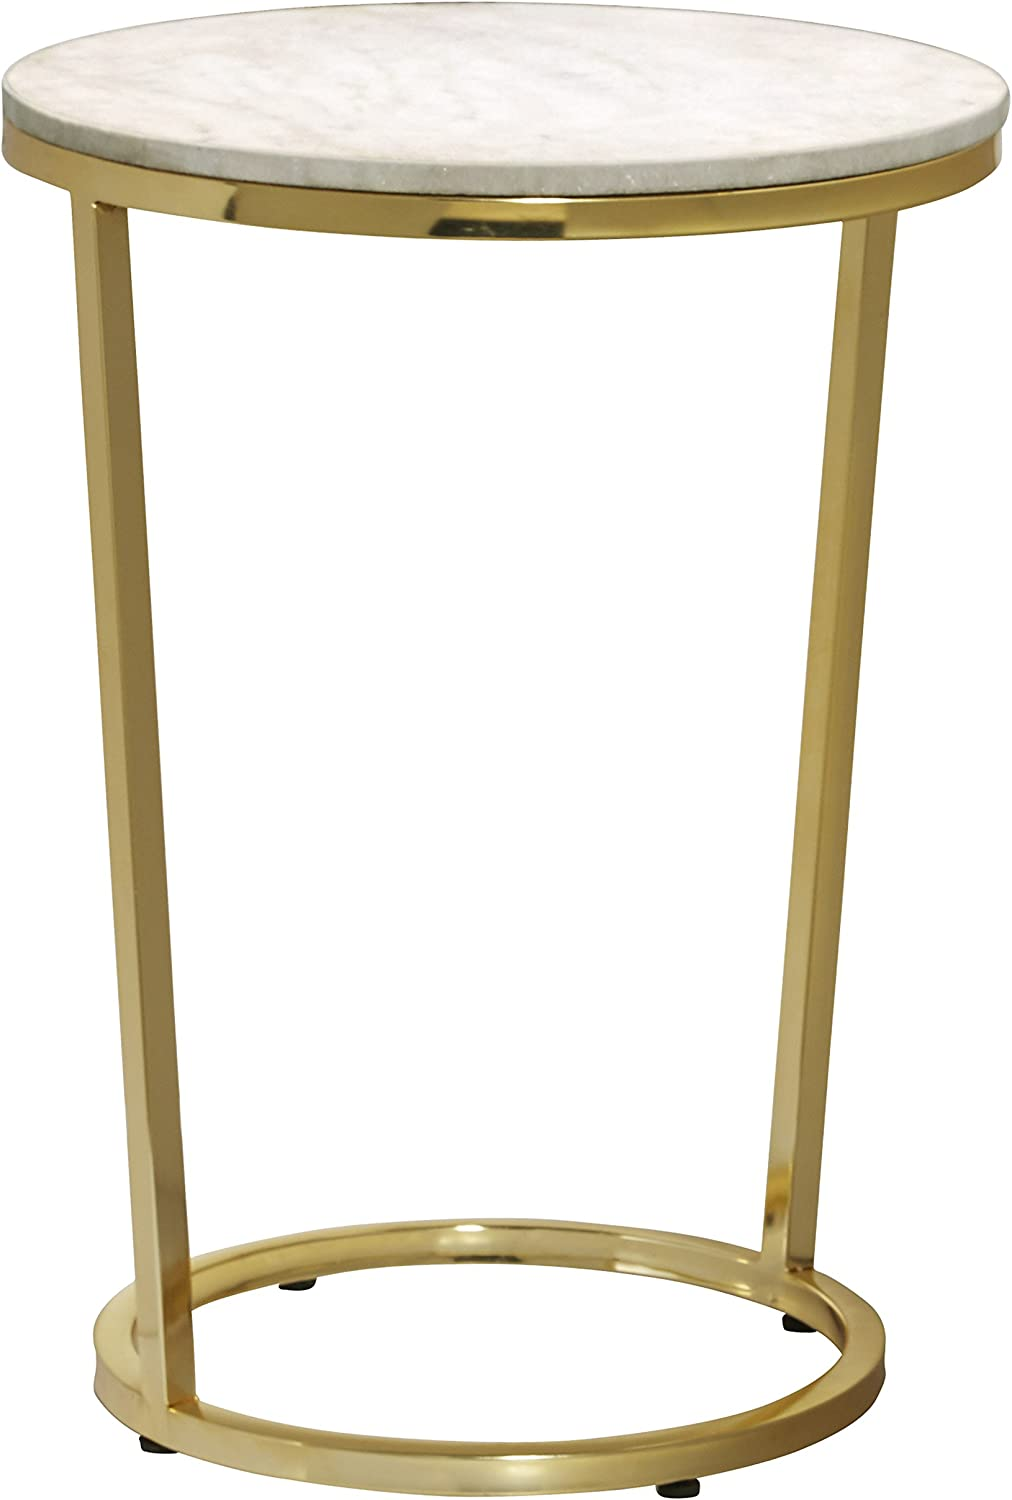 - Amazon.com: Pulaski Emory Marble Top Round Accent Table With Gold